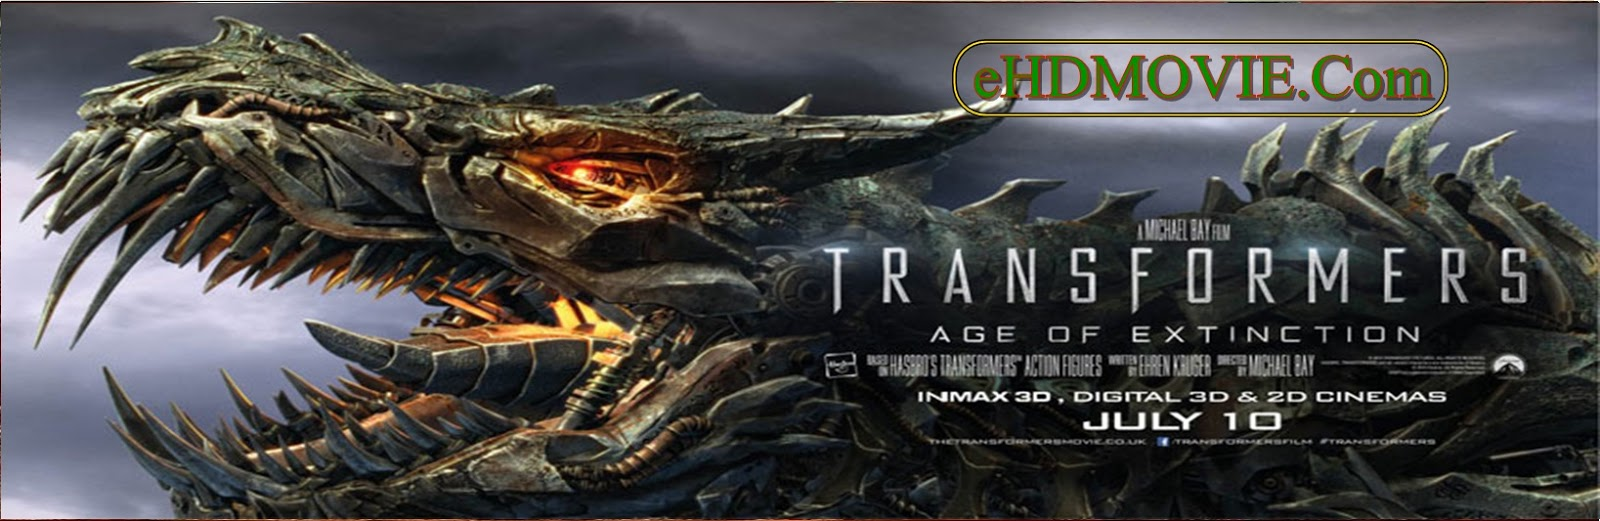 Transformers 4: Age of Extinction 2014 Full Movie Dual Audio [Hindi – English] 1080p - 720p - 480p ORG BRRip 500MB - 1.4GB - 4.8GB ESubs Free Download